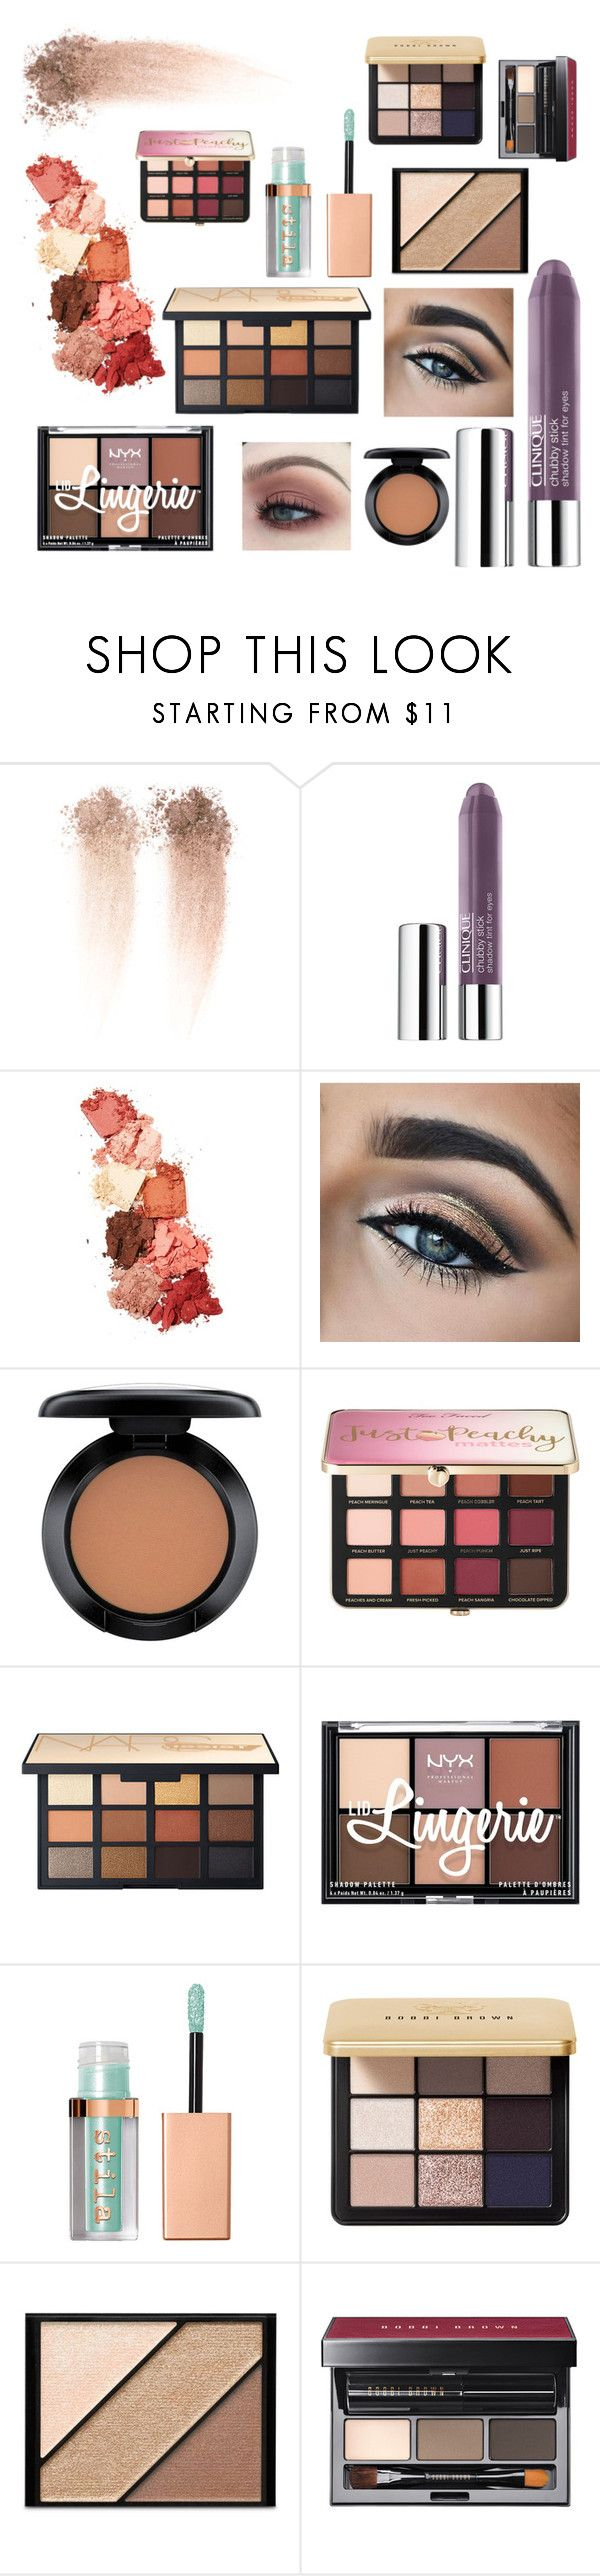 """""""Eyeshadow"""" by ccatprvncess ❤ liked on Polyvore featuring beauty, Clinique, Lime Crime, MAC Cosmetics, Sephora Collection, NYX, Stila, Bobbi Brown Cosmetics, Elizabeth Arden and eyeshadow"""